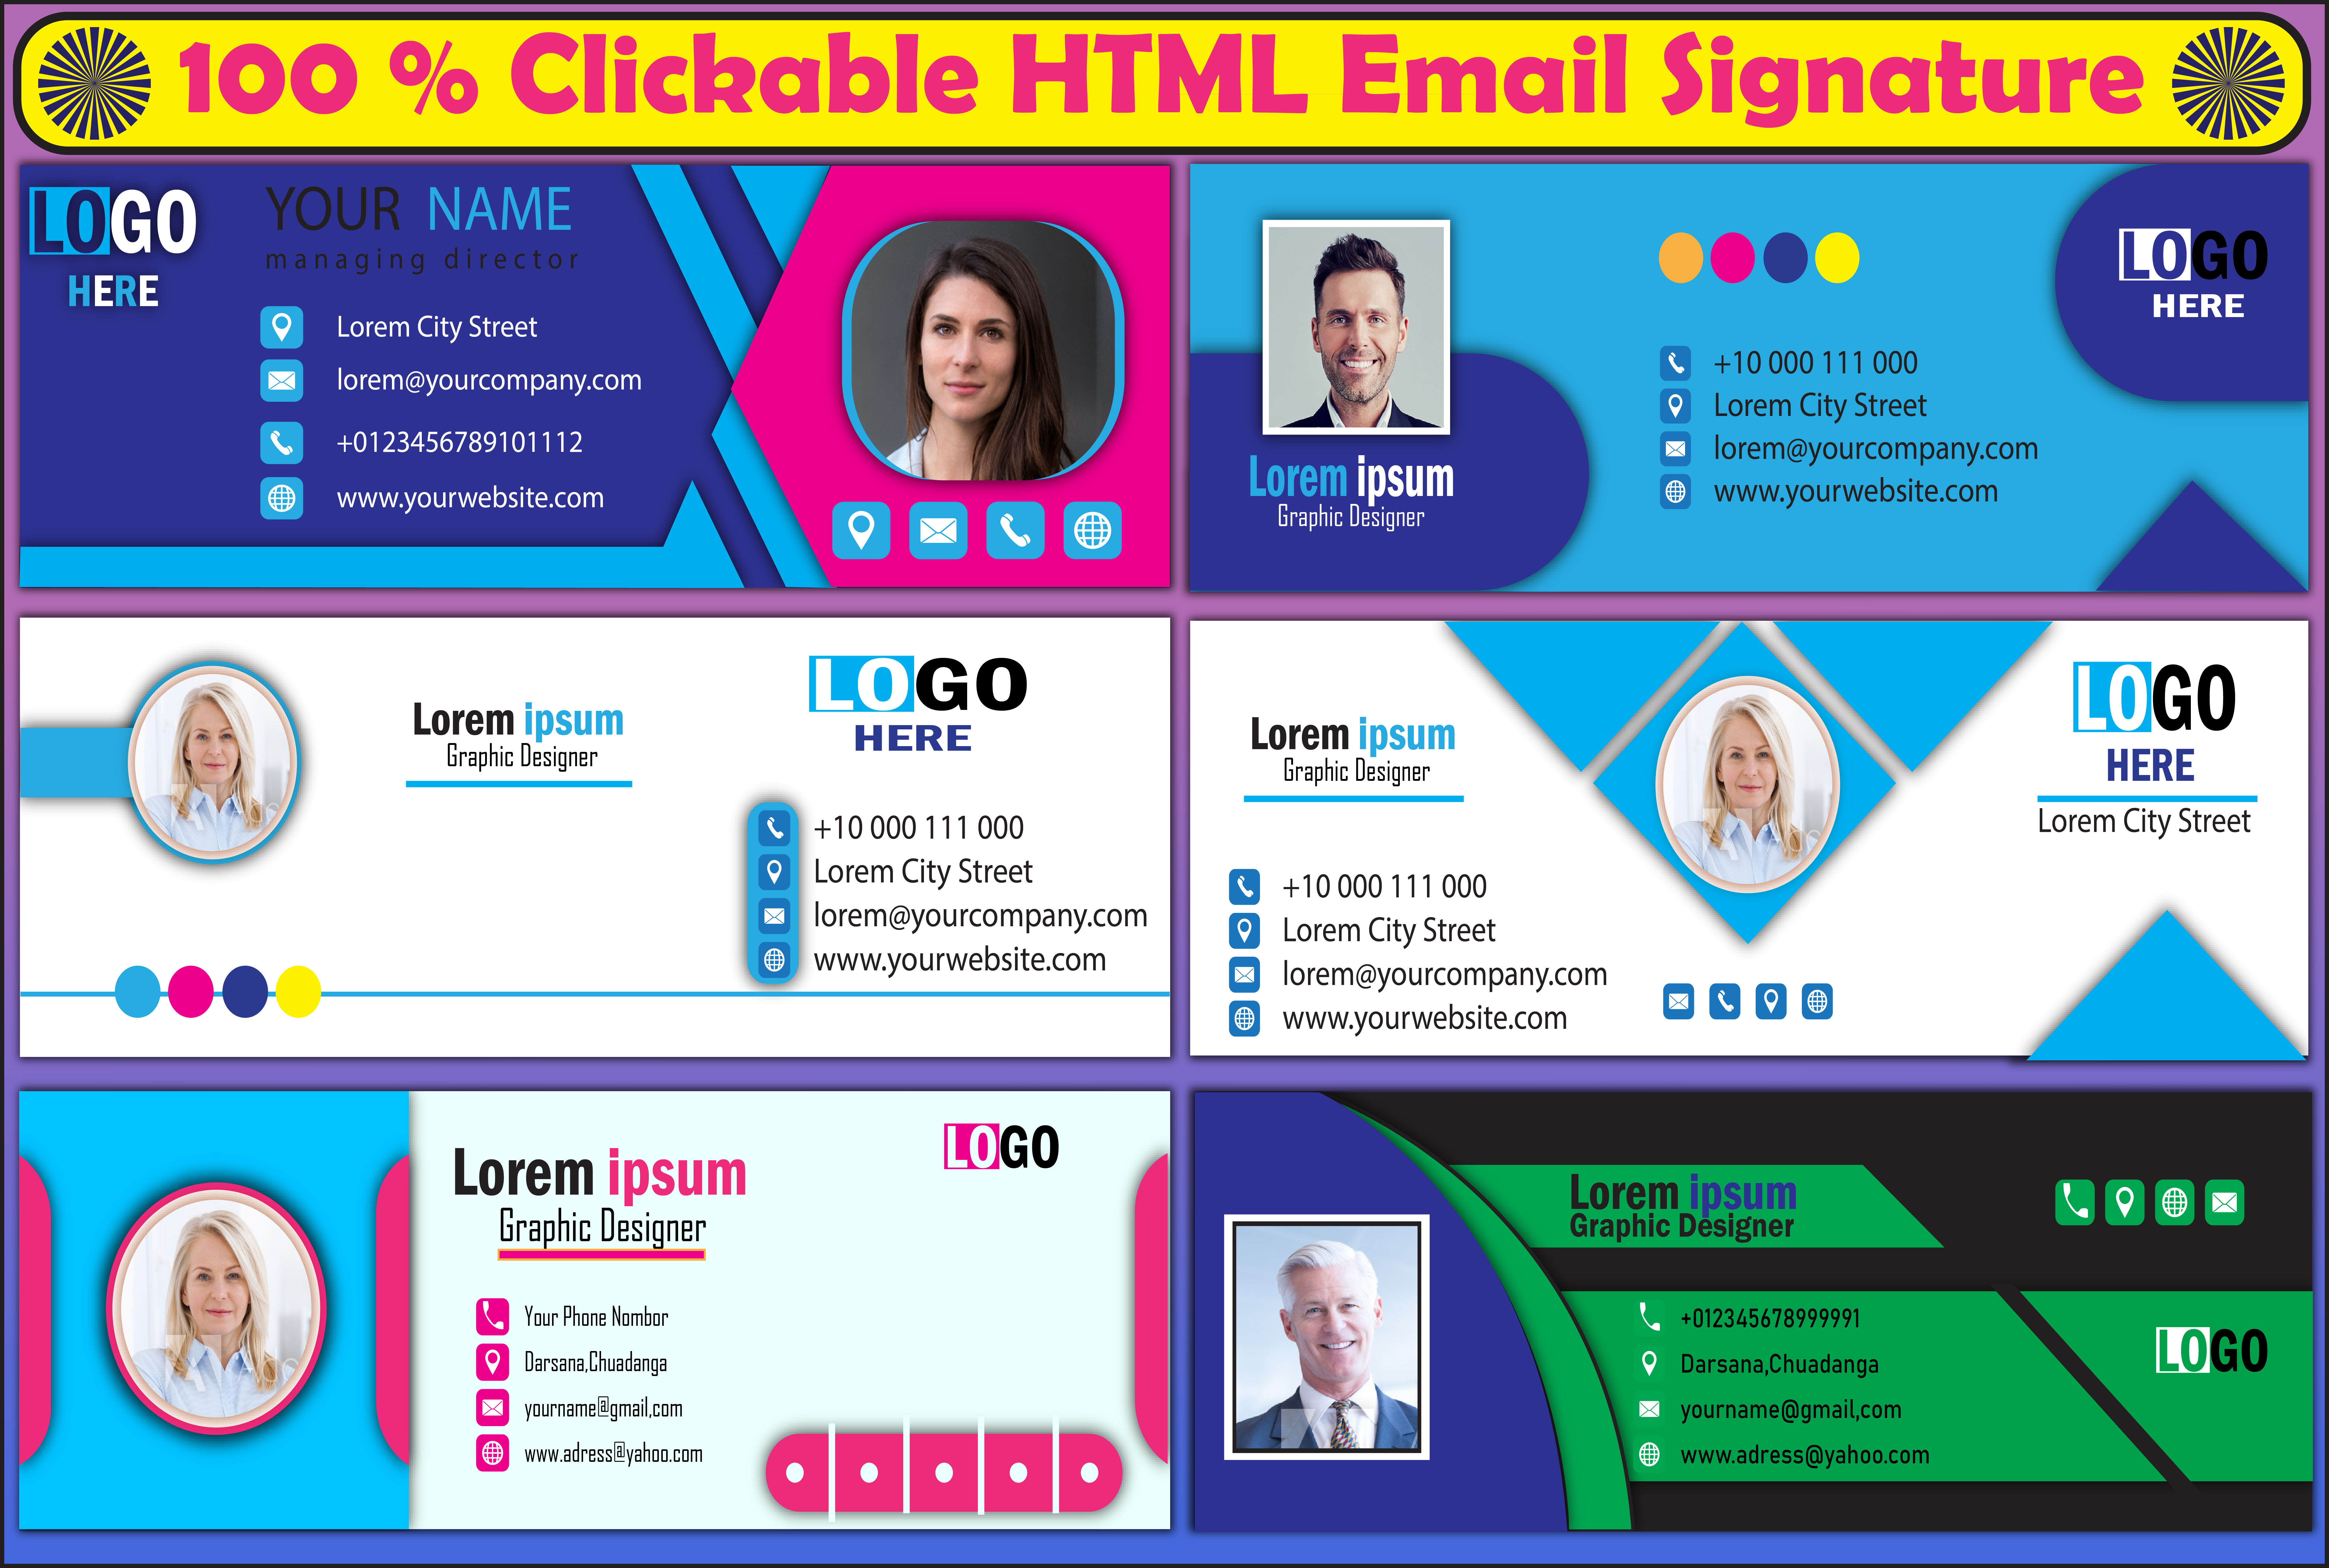 I will do a professional clickable HTML email signature